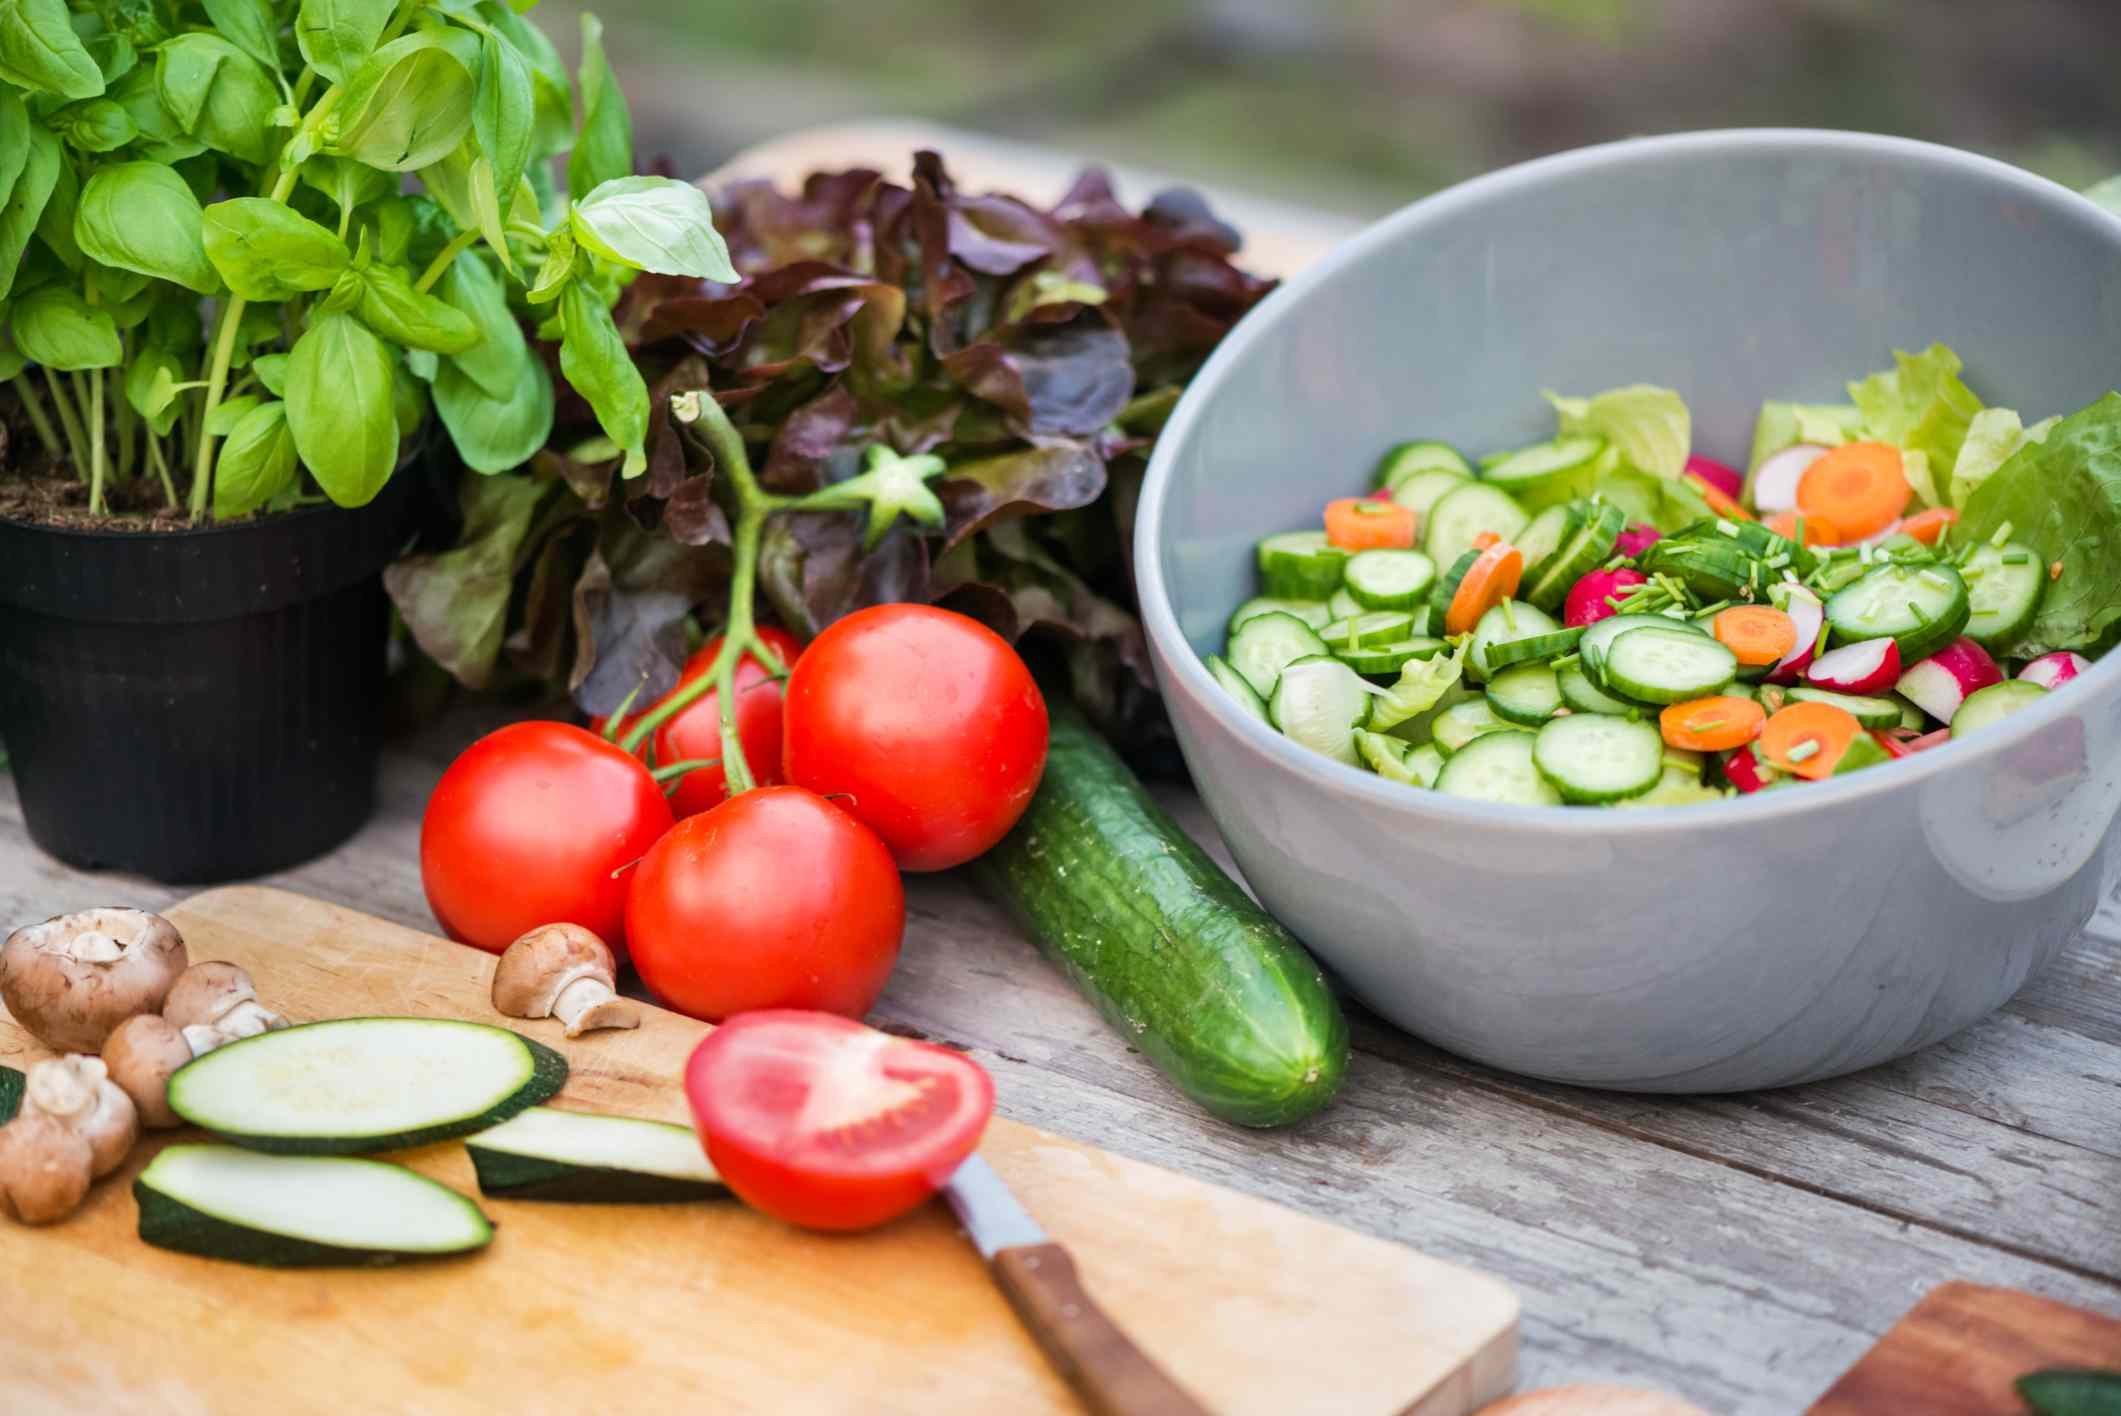 vegetables on cutting board with bowl of salad